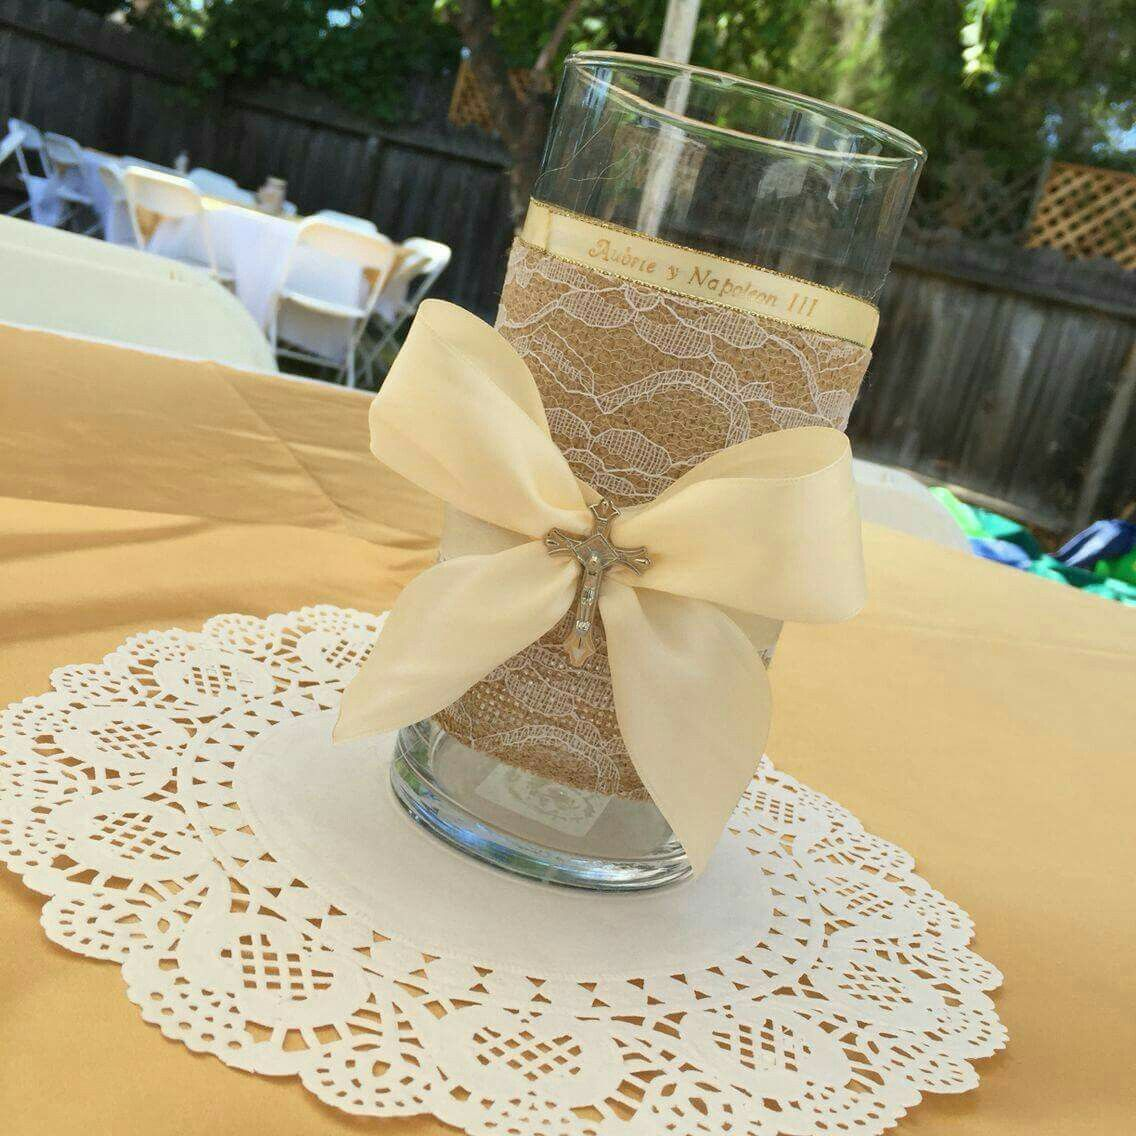 Pin by Julissa molina on baptism | Holy communion party ...